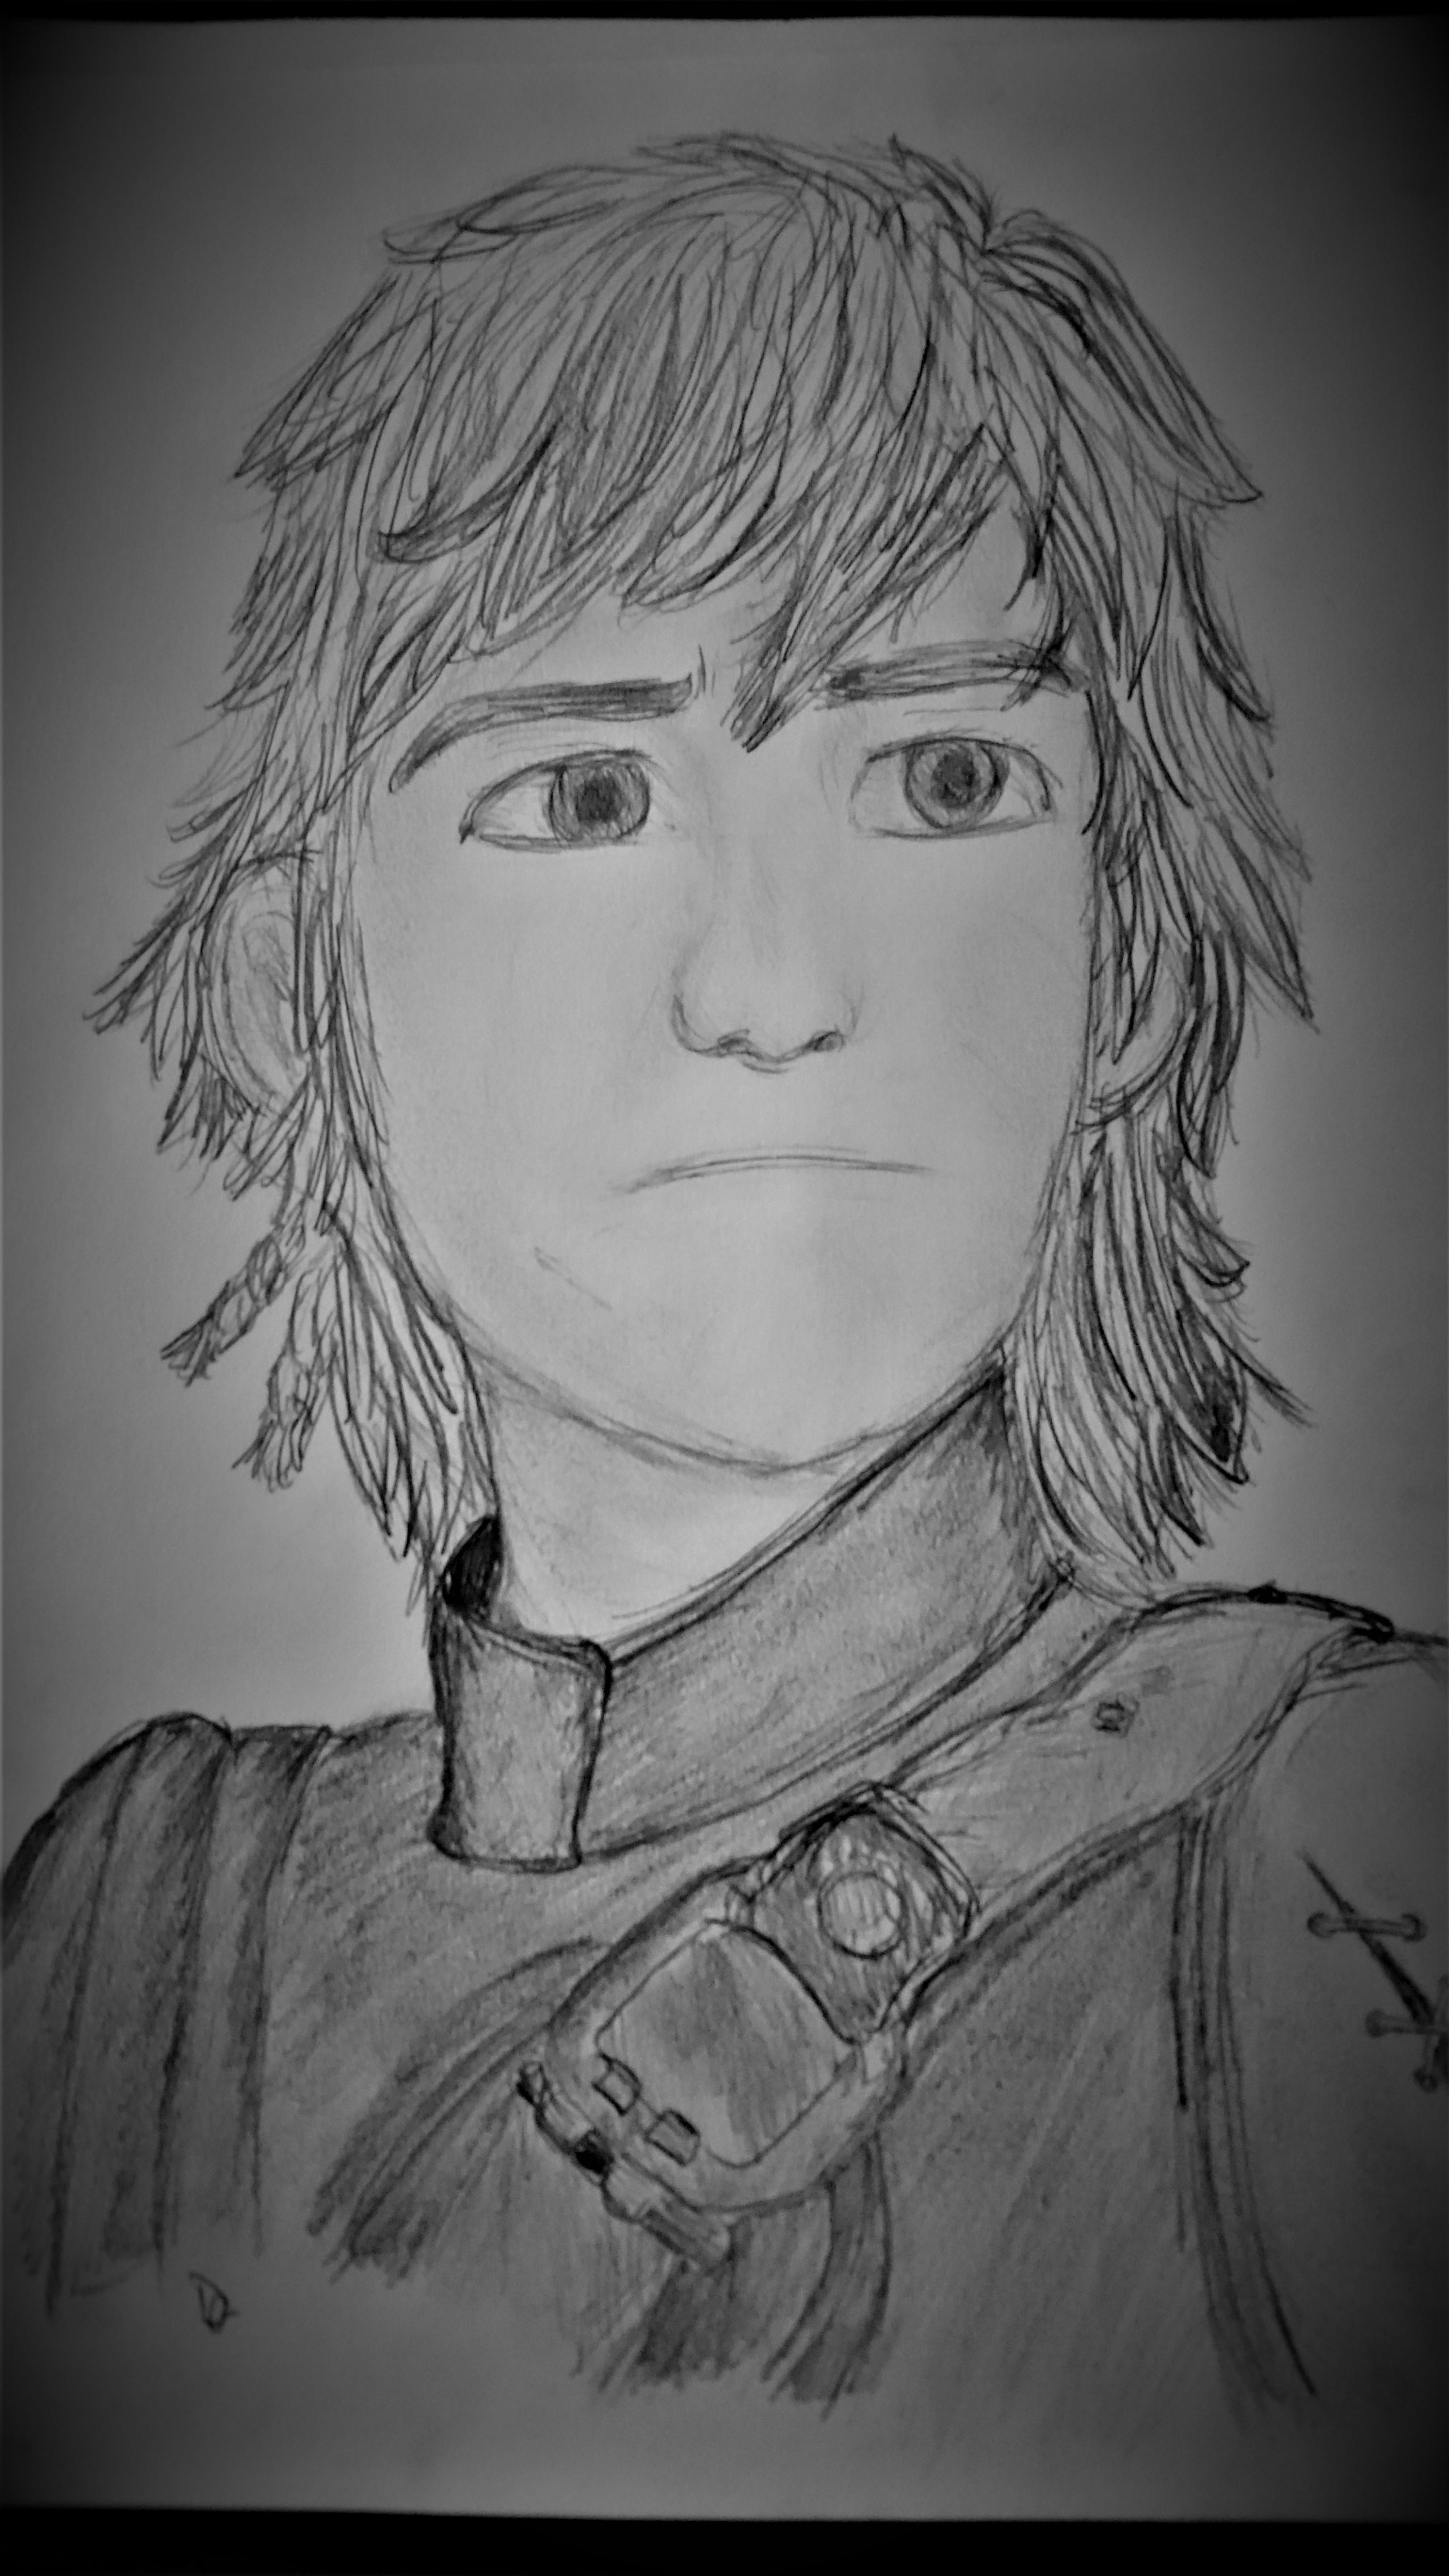 hiccup by snapper